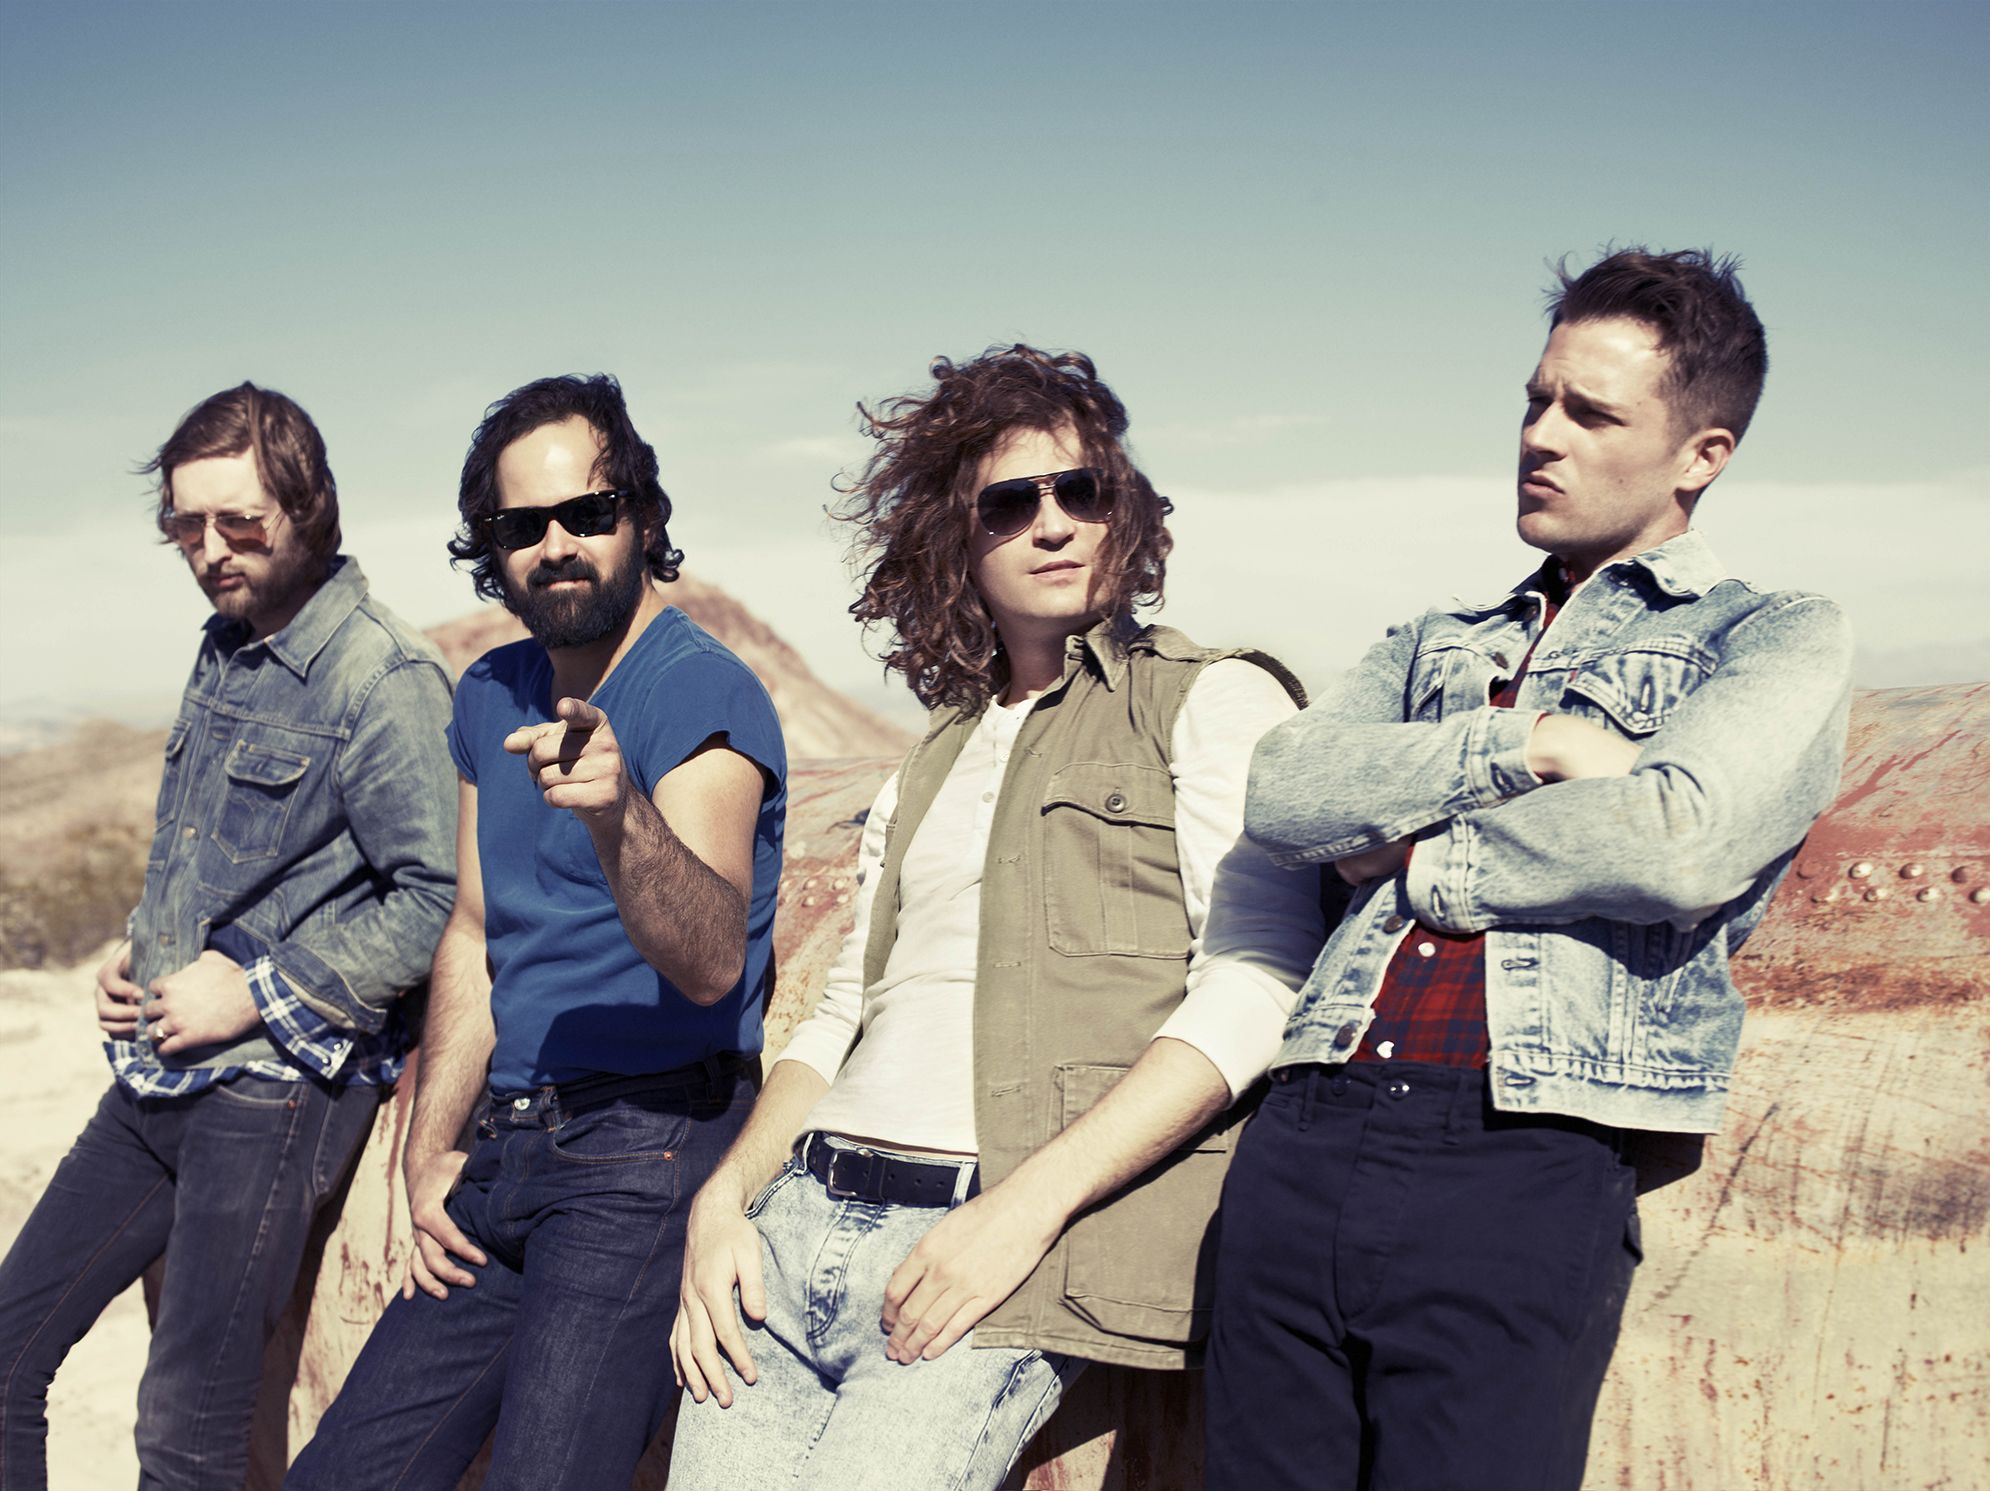 What Ever Happened To The Killers? Brandon flowers